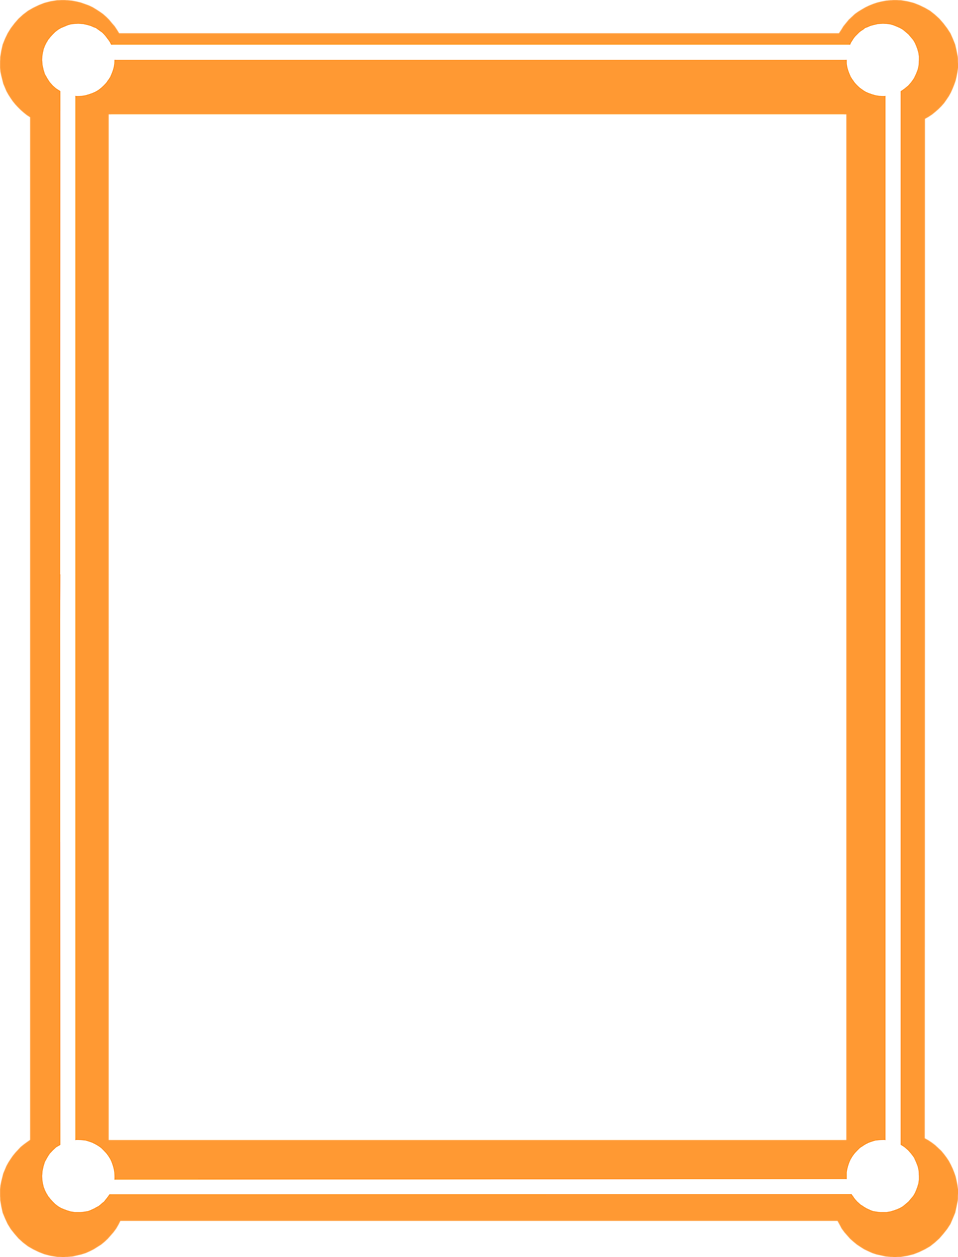 Border orange free stock. Clipart car borders